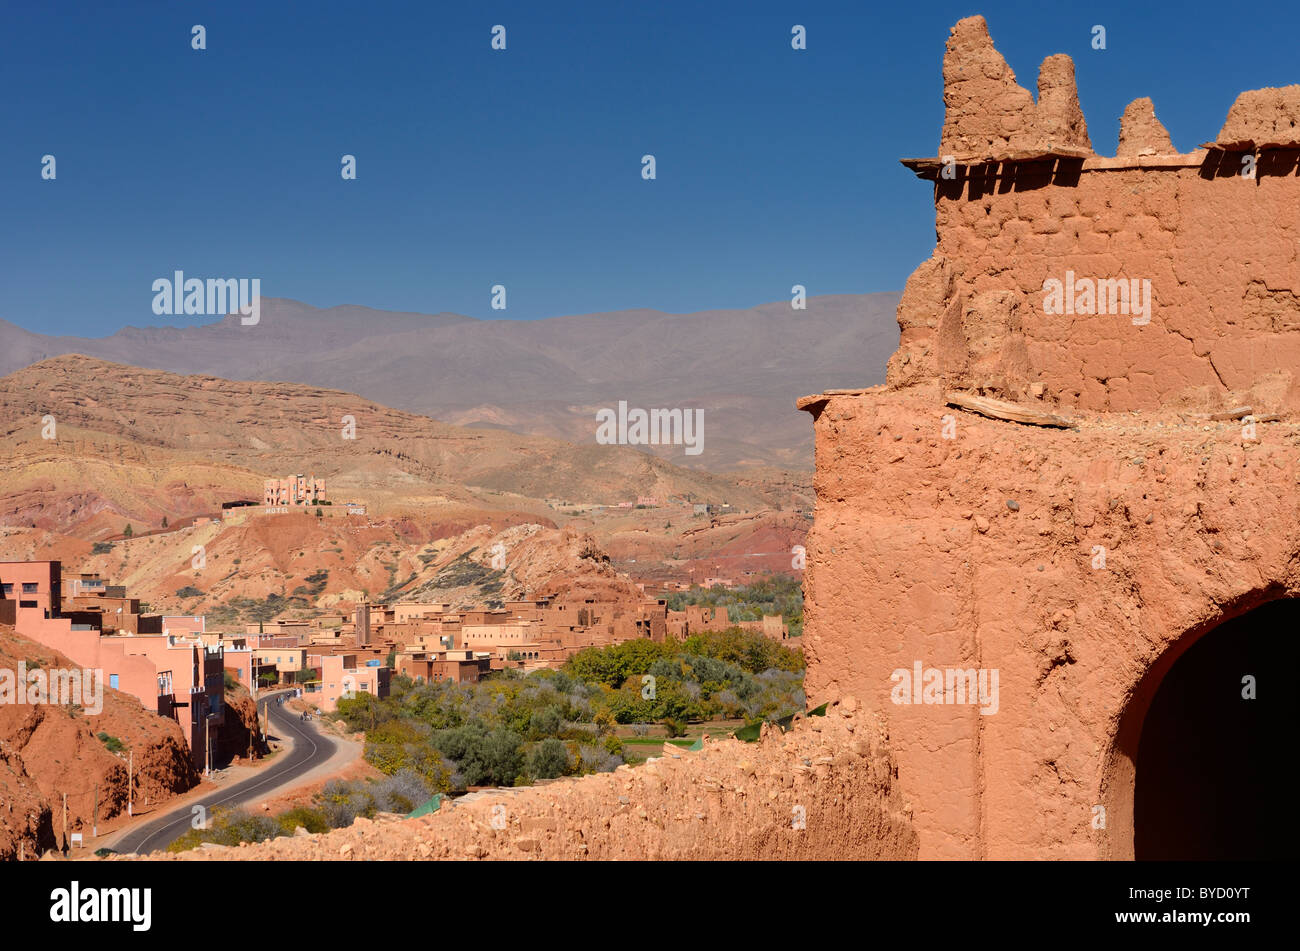 Road up the red Dades Gorge in the High Atlas mountains from the crumbling Kasbah Ait Youl rooftop Morocco - Stock Image